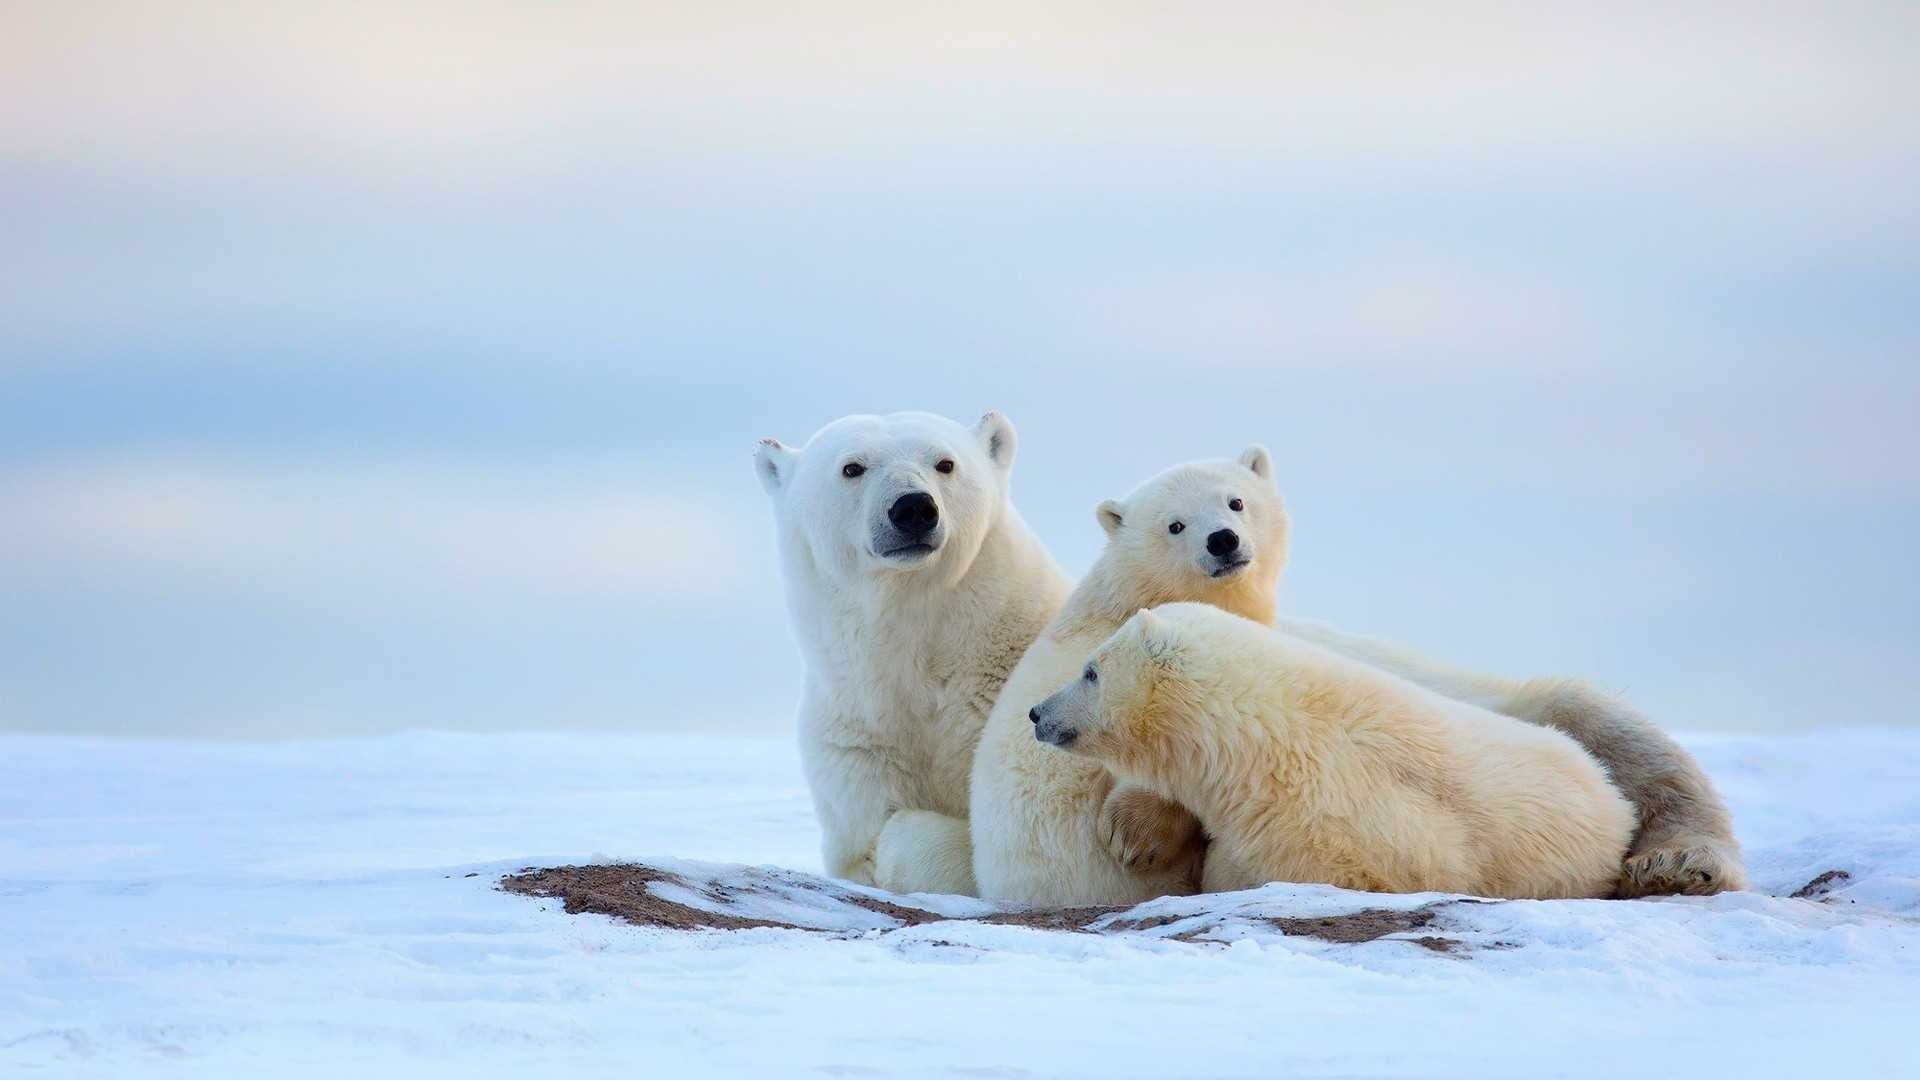 Download full hd Polar Bear computer background ID:359775 for free